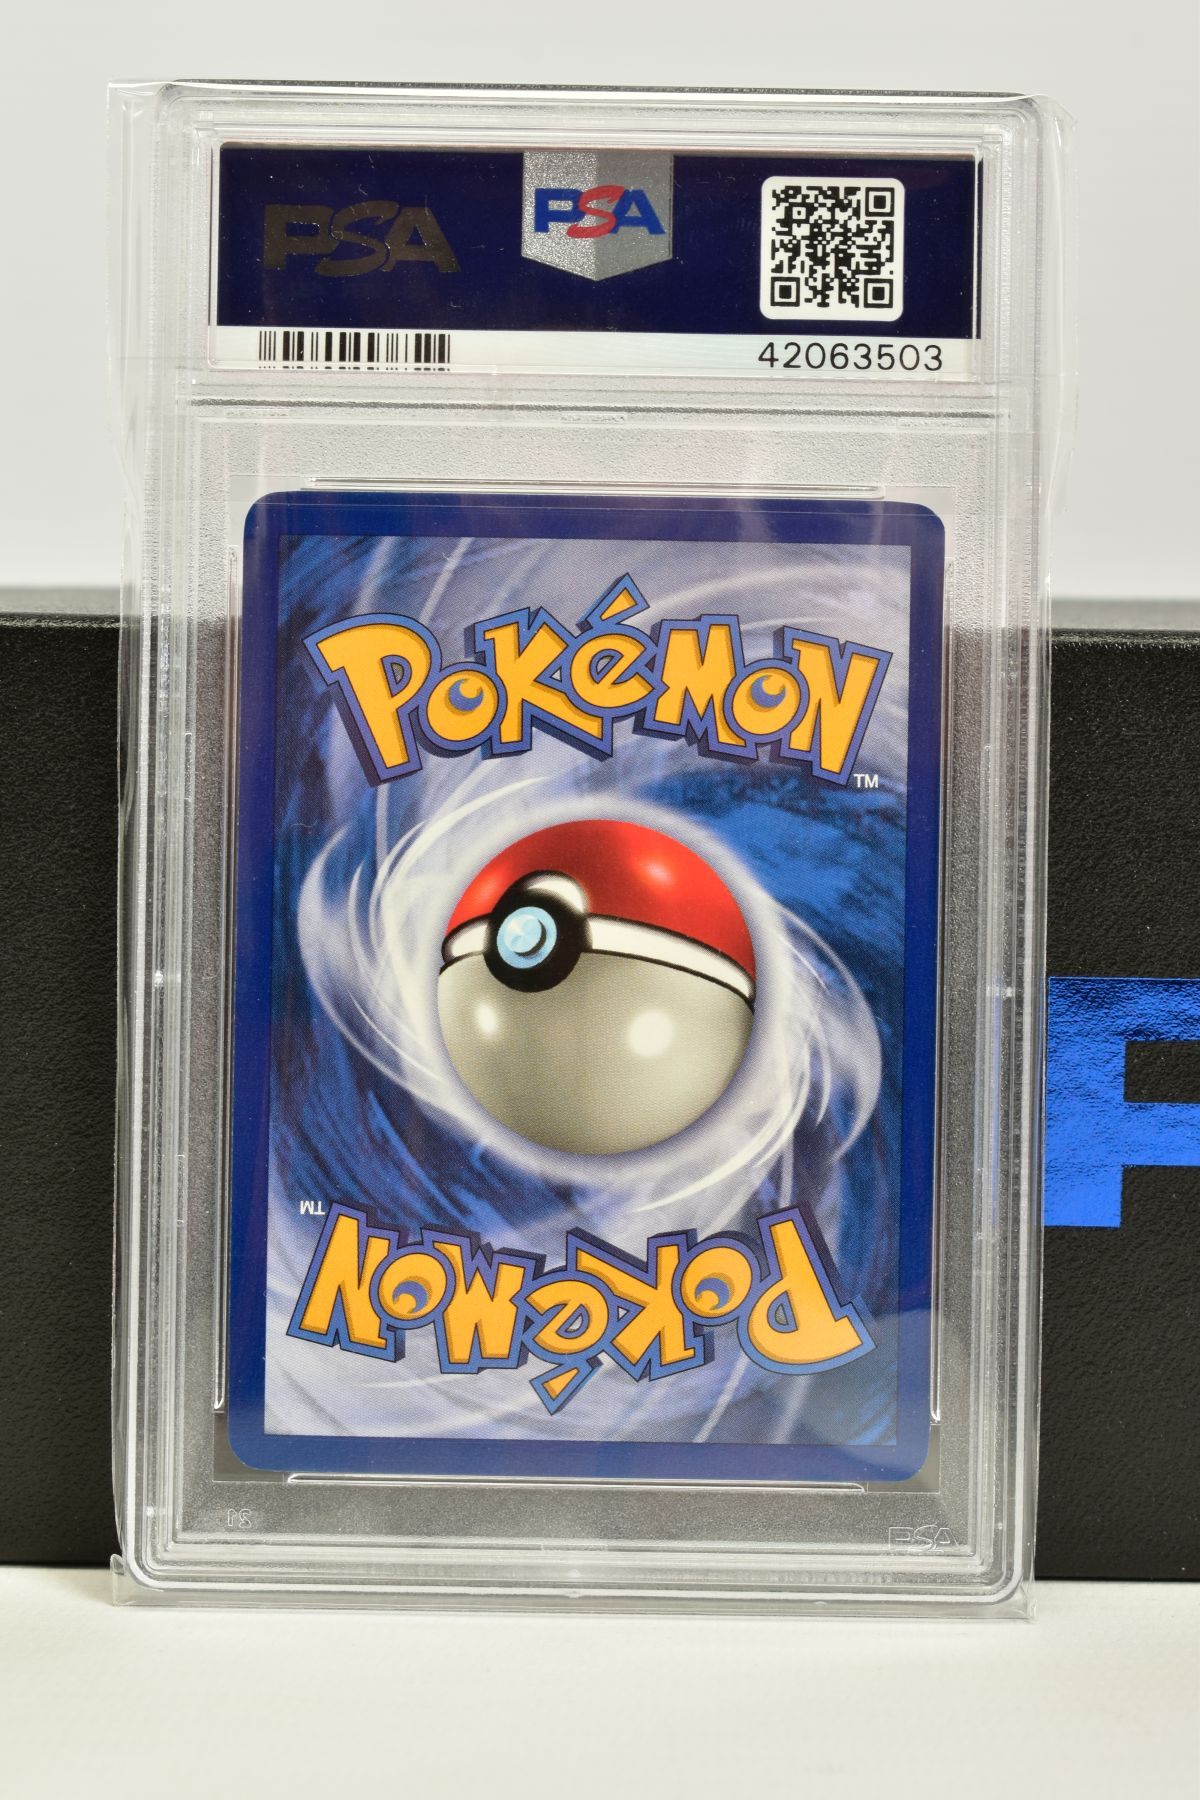 A PSA GRADED POKEMON 1ST EDITION FOSSIL SET AERODACTYL HOLO CARD, (1/62), graded GEM MINT 10 and - Image 2 of 2